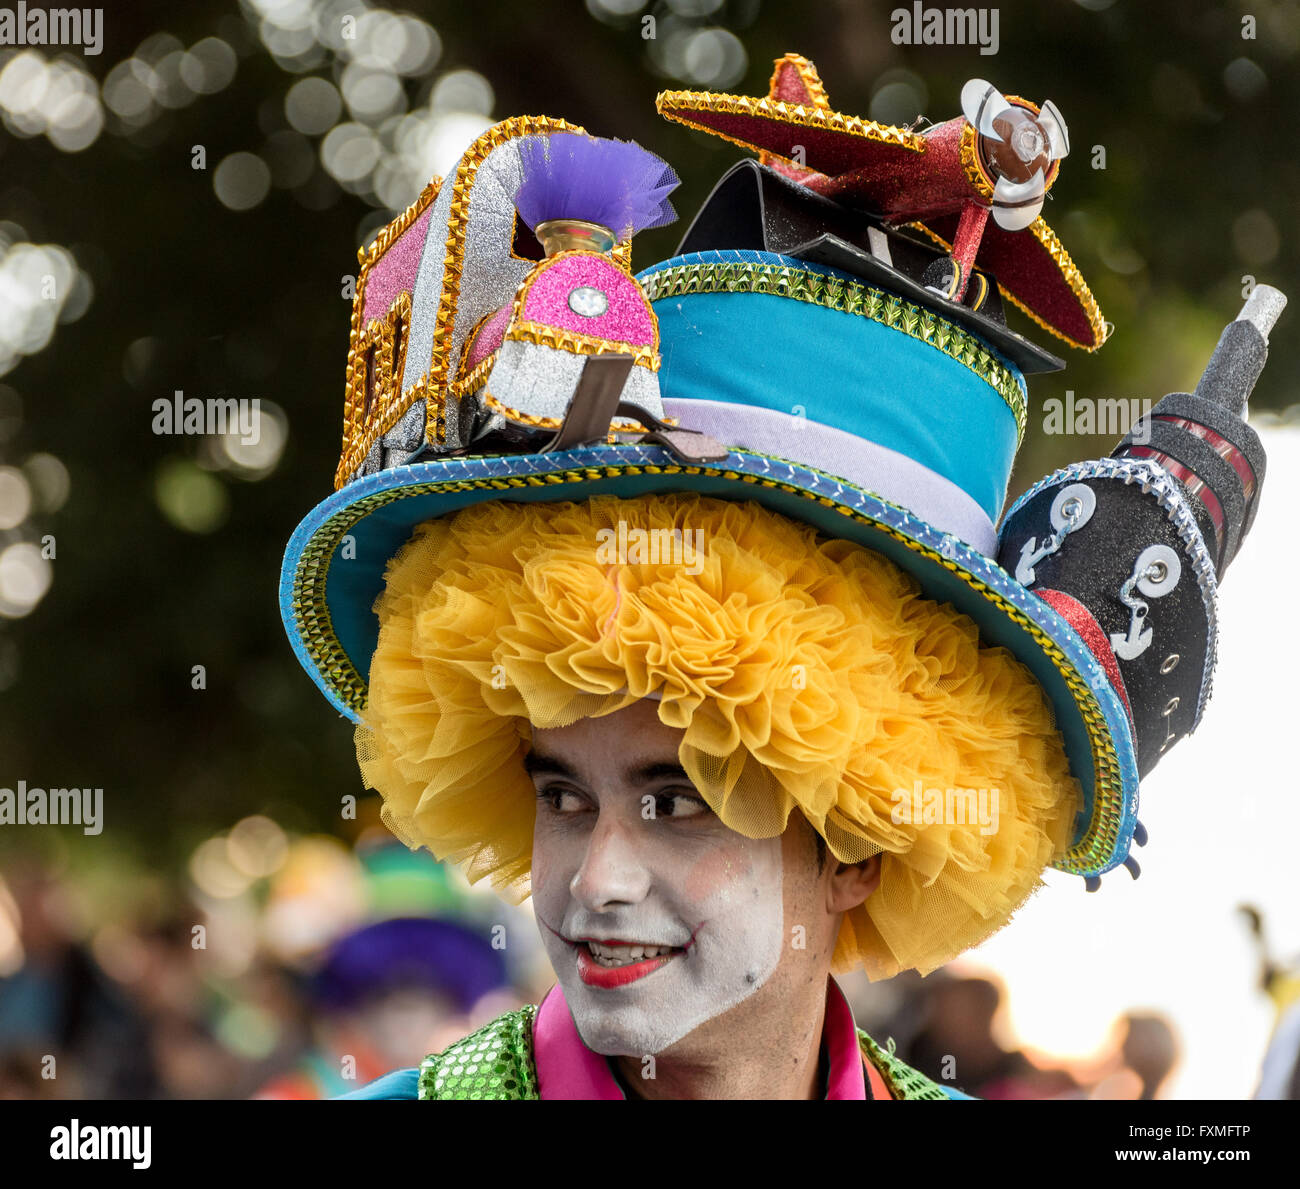 Man wearing elaborate hat - Trains, Boats and Planes, Carnival Procession, Santa Cruz, Tenerife - Stock Image